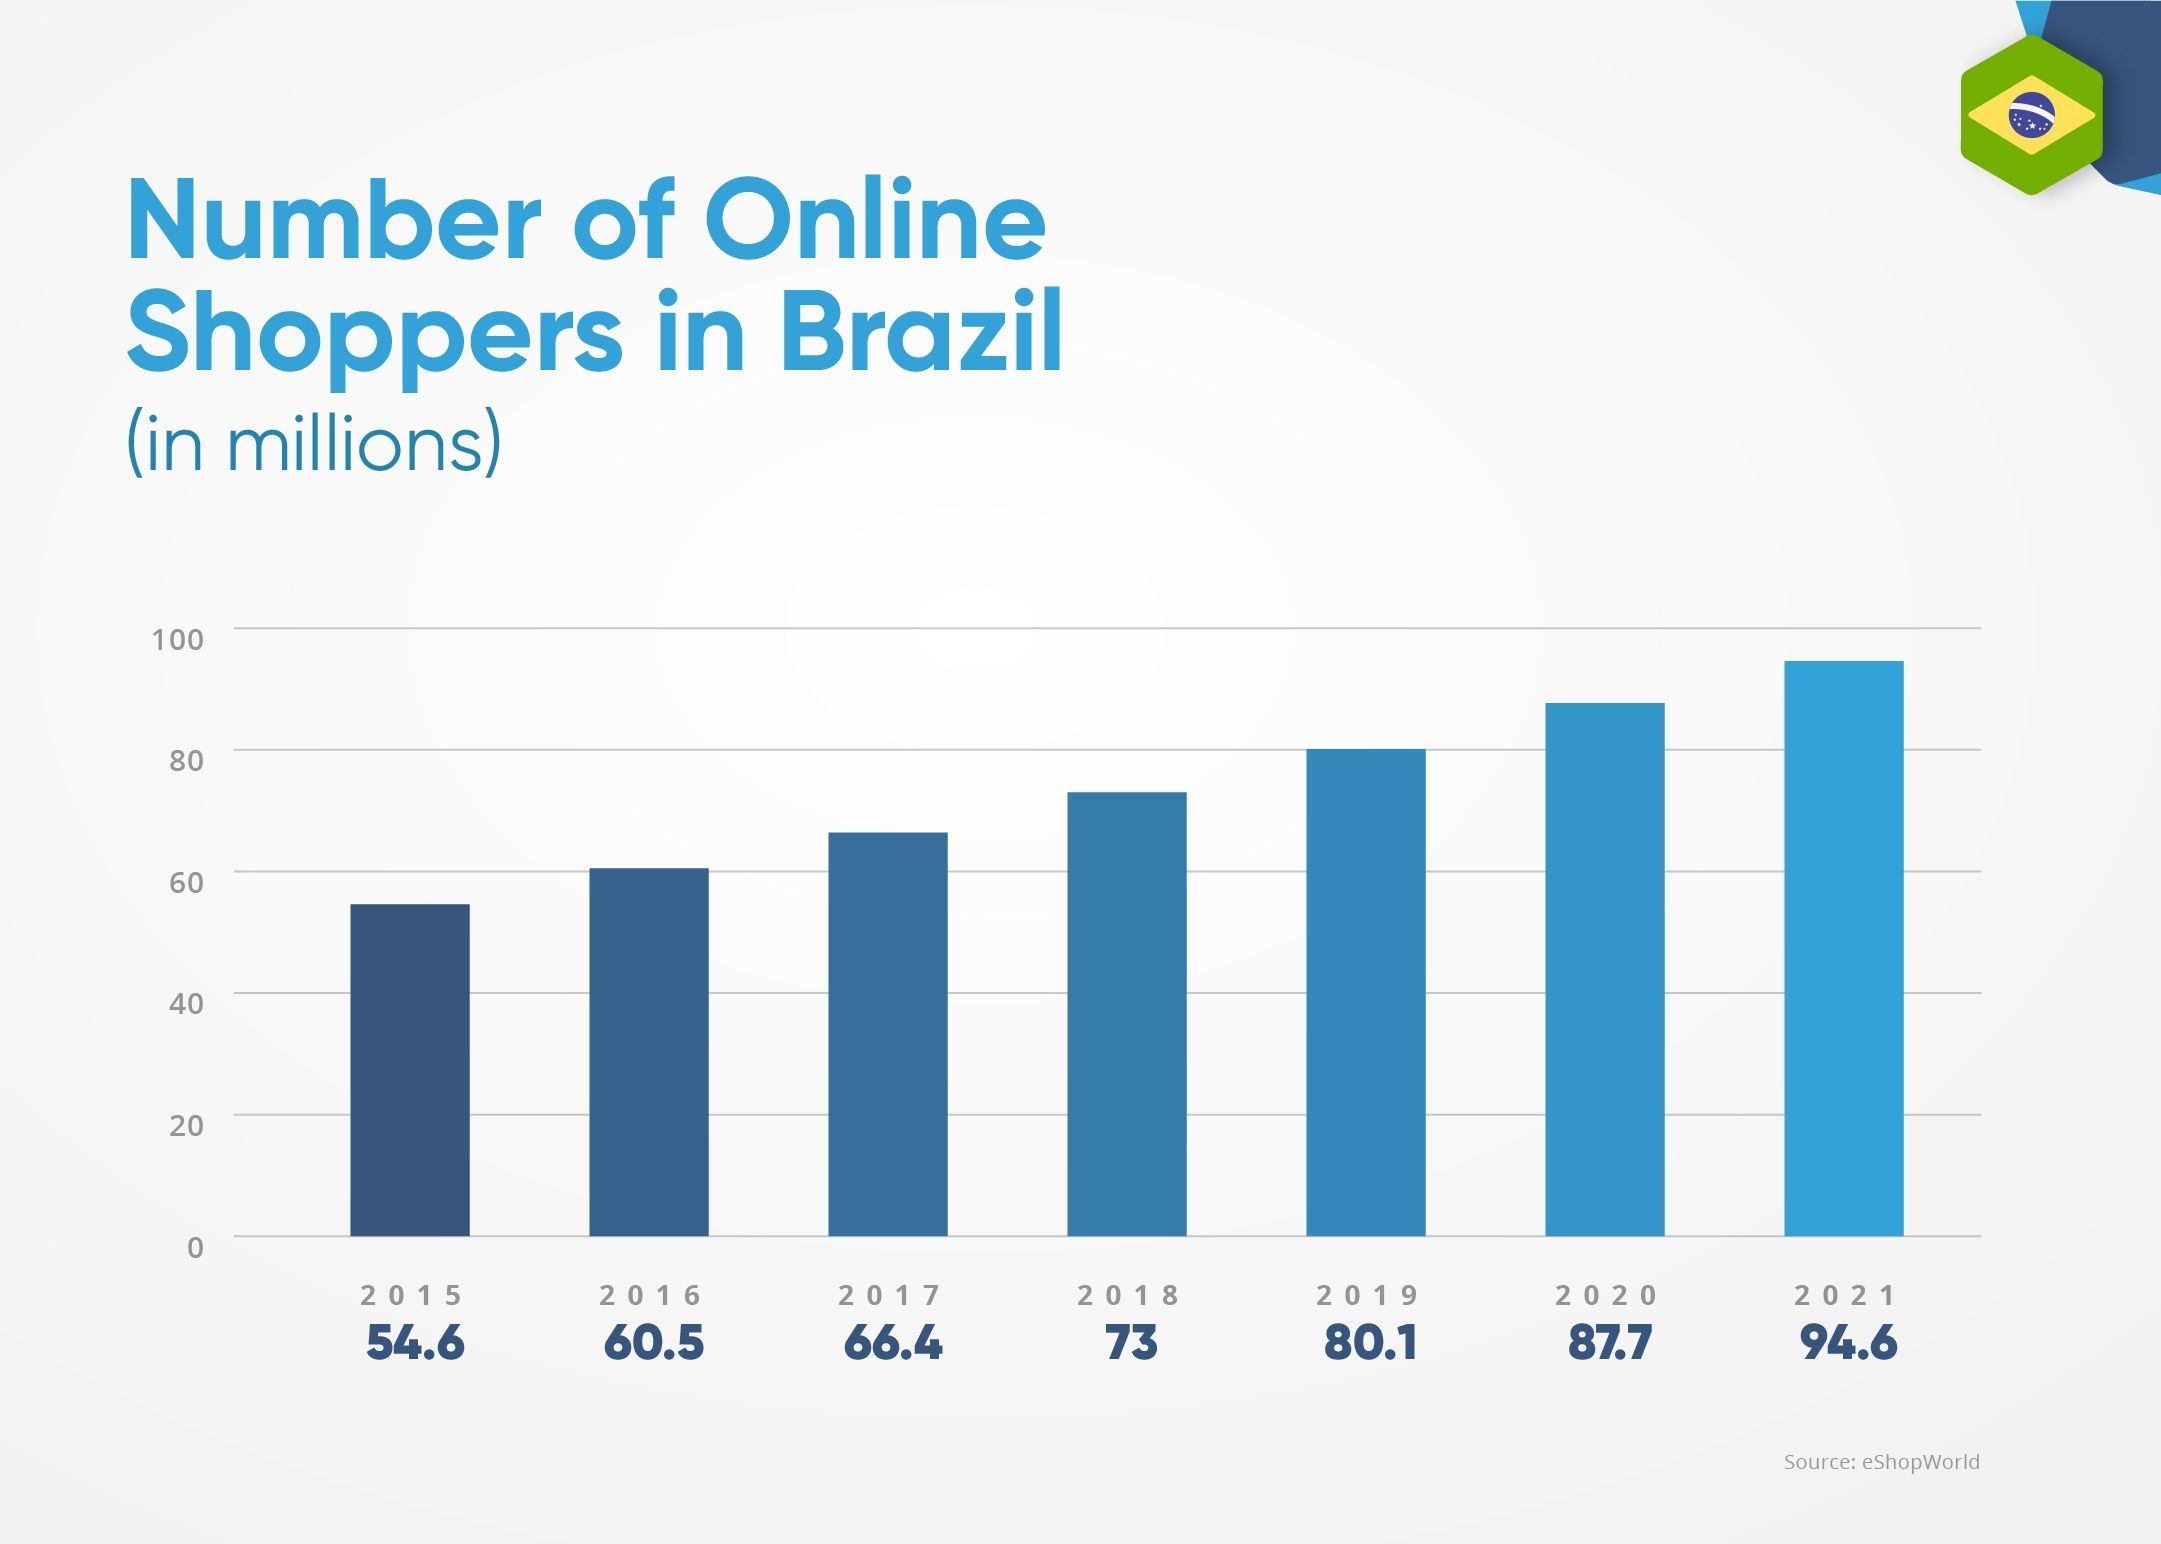 EBANX_number_of_online_shoppers_brazil_02.jpg